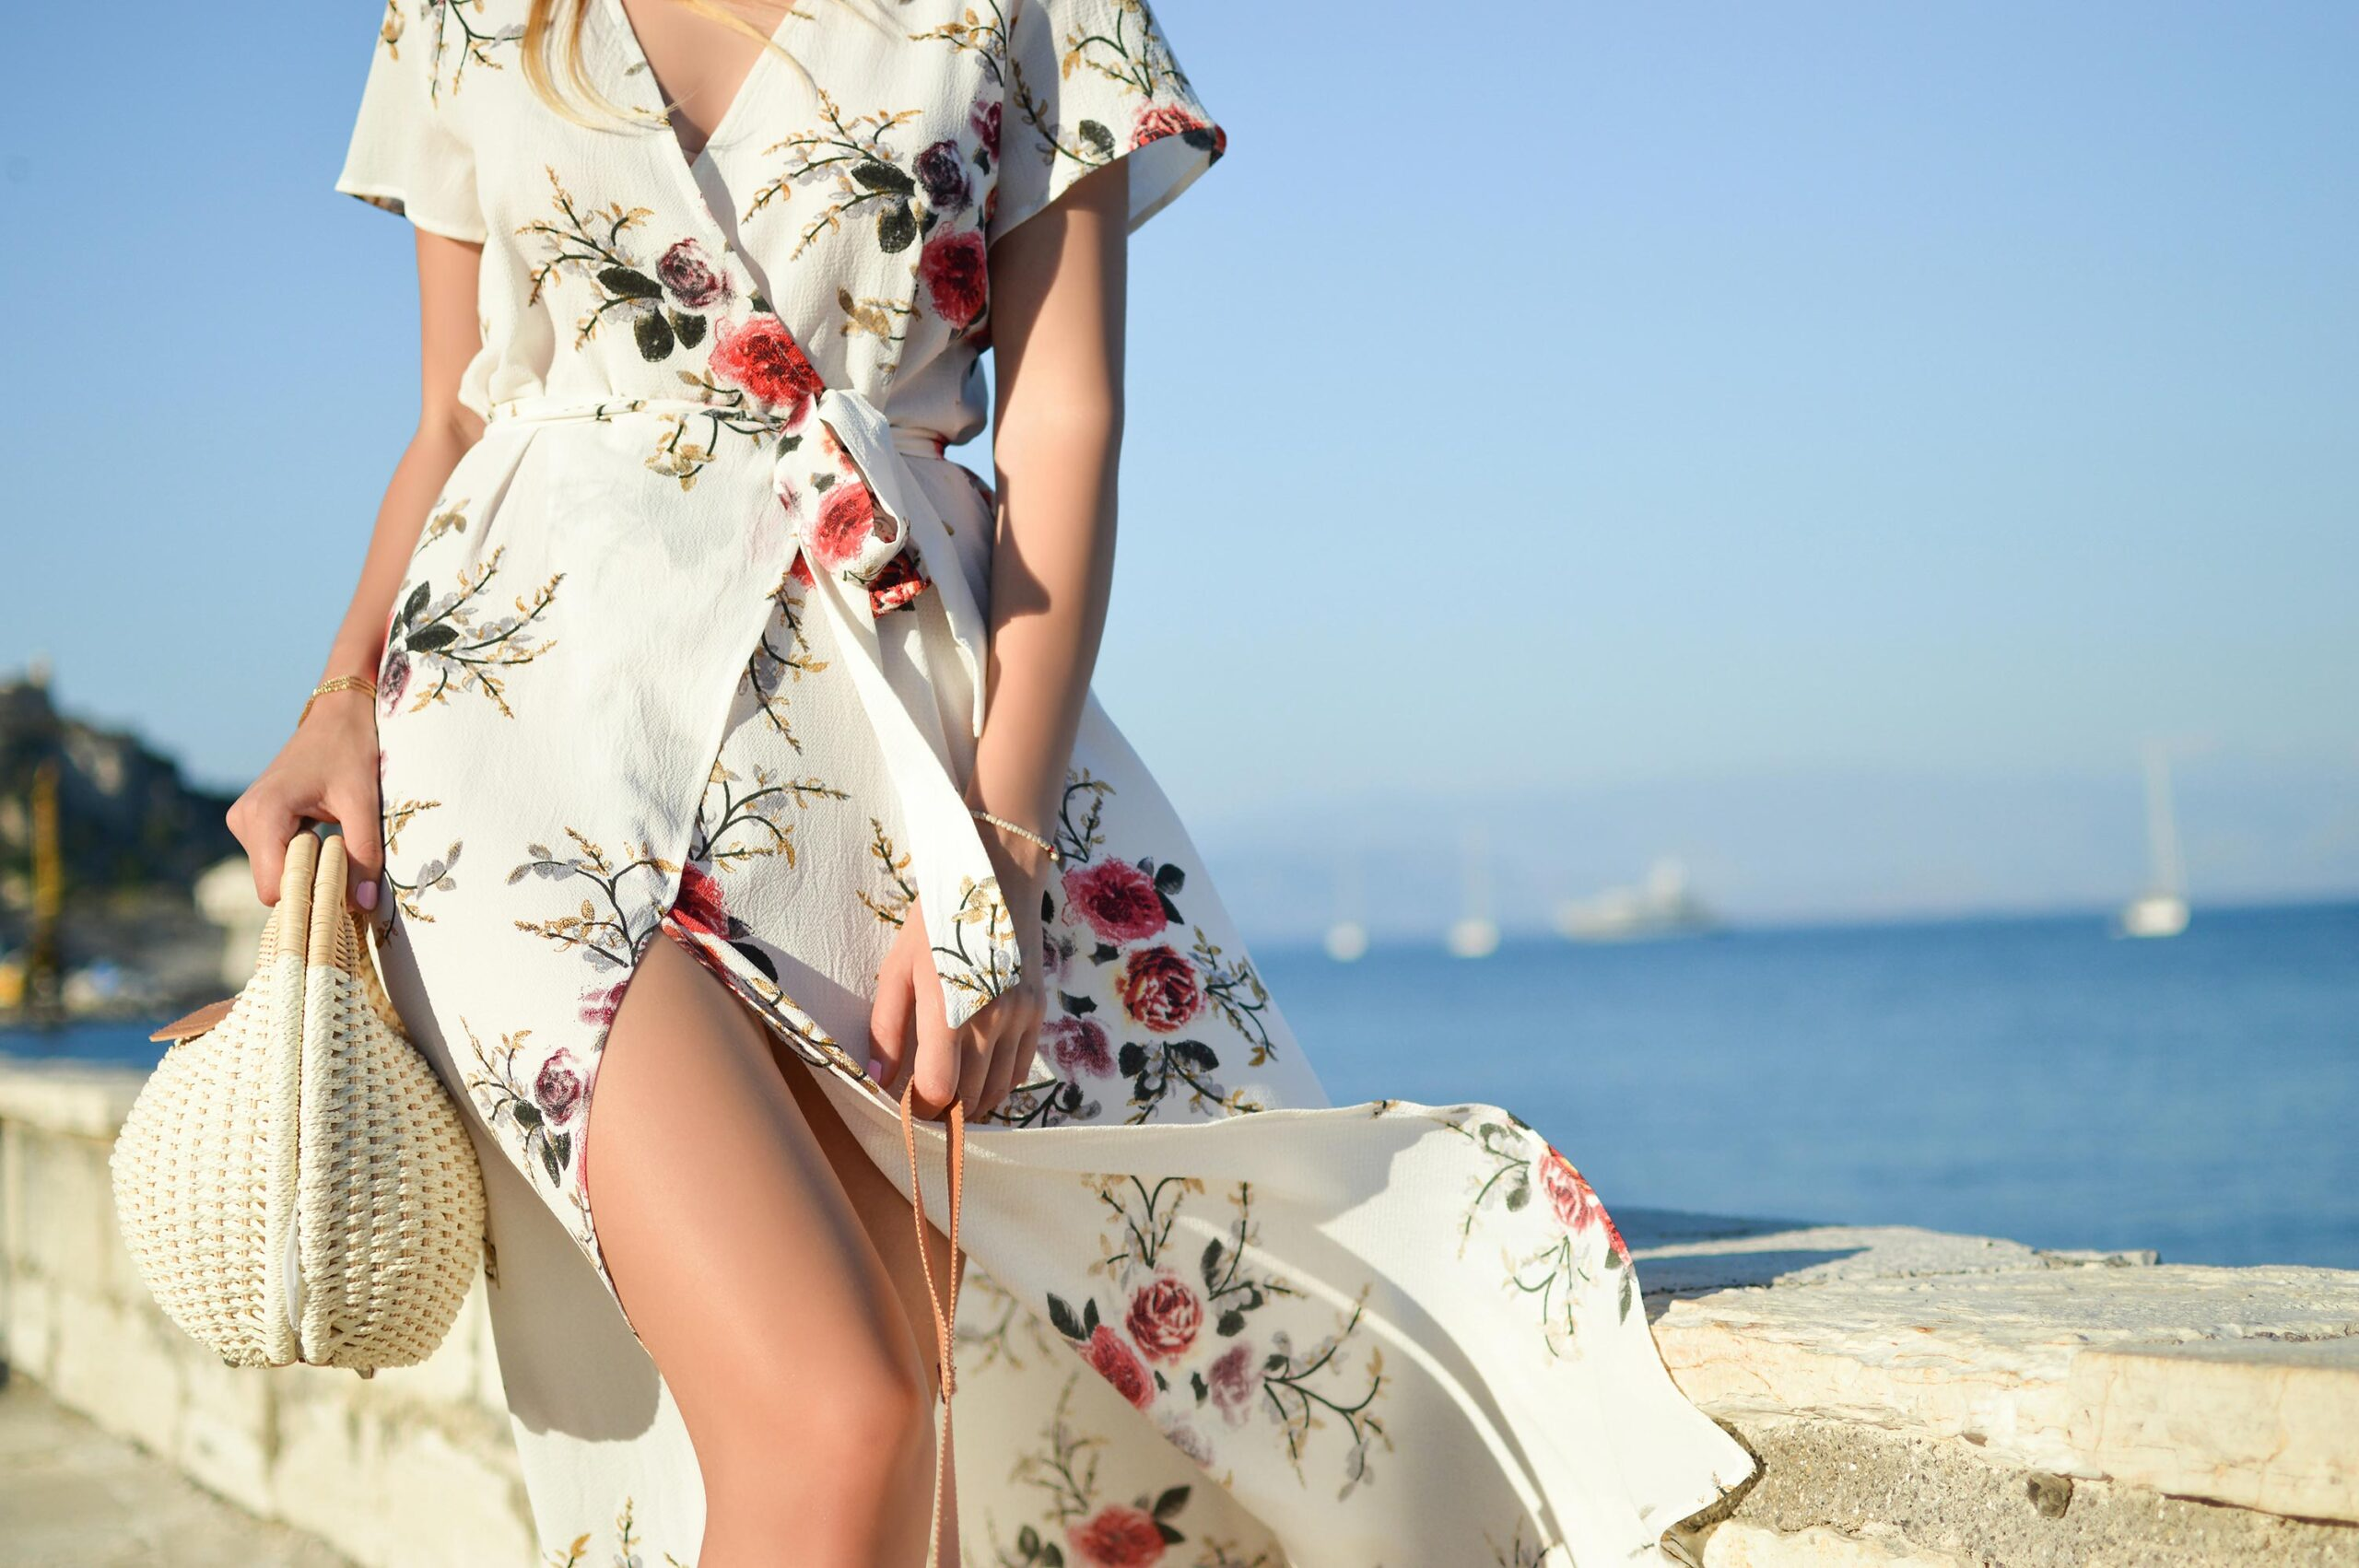 Where to Buy Affordable Dresses in Hong Kong?